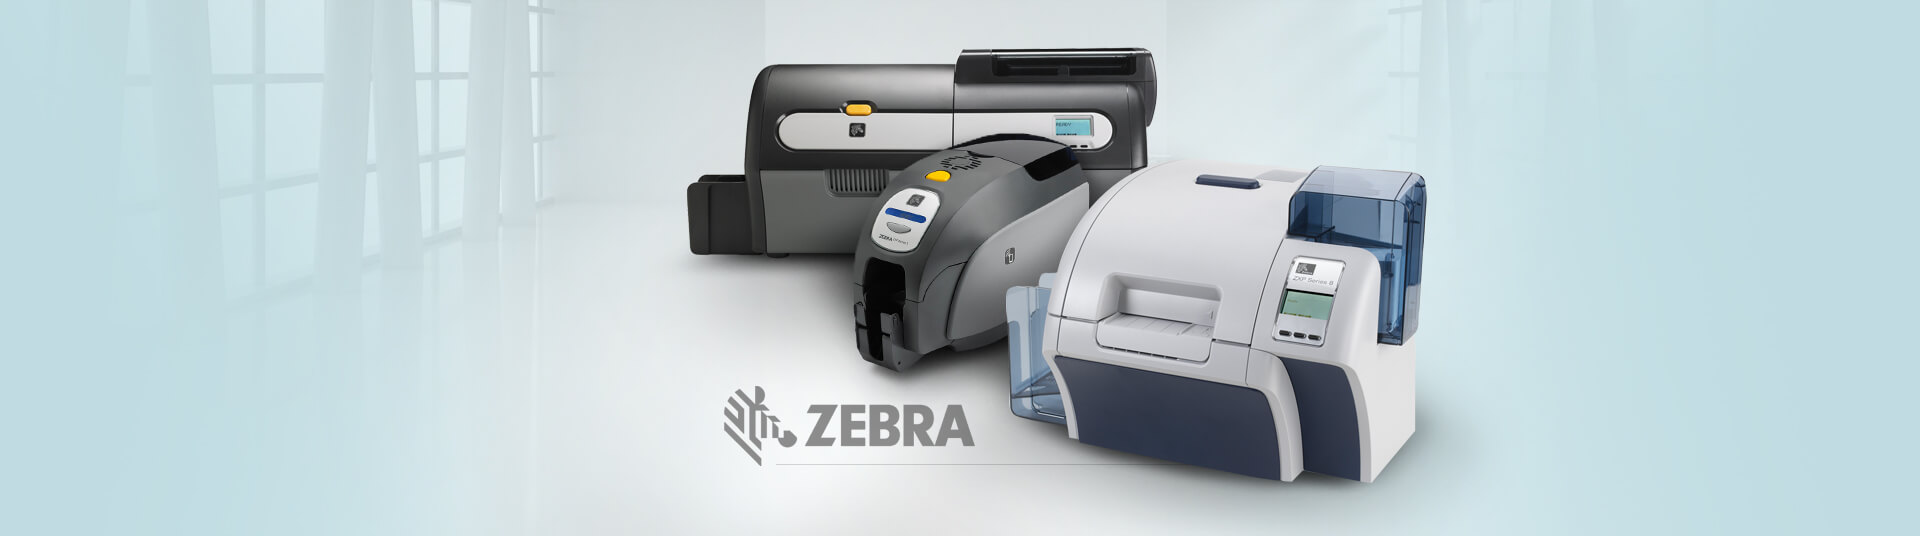 Zebra ID Card Machine